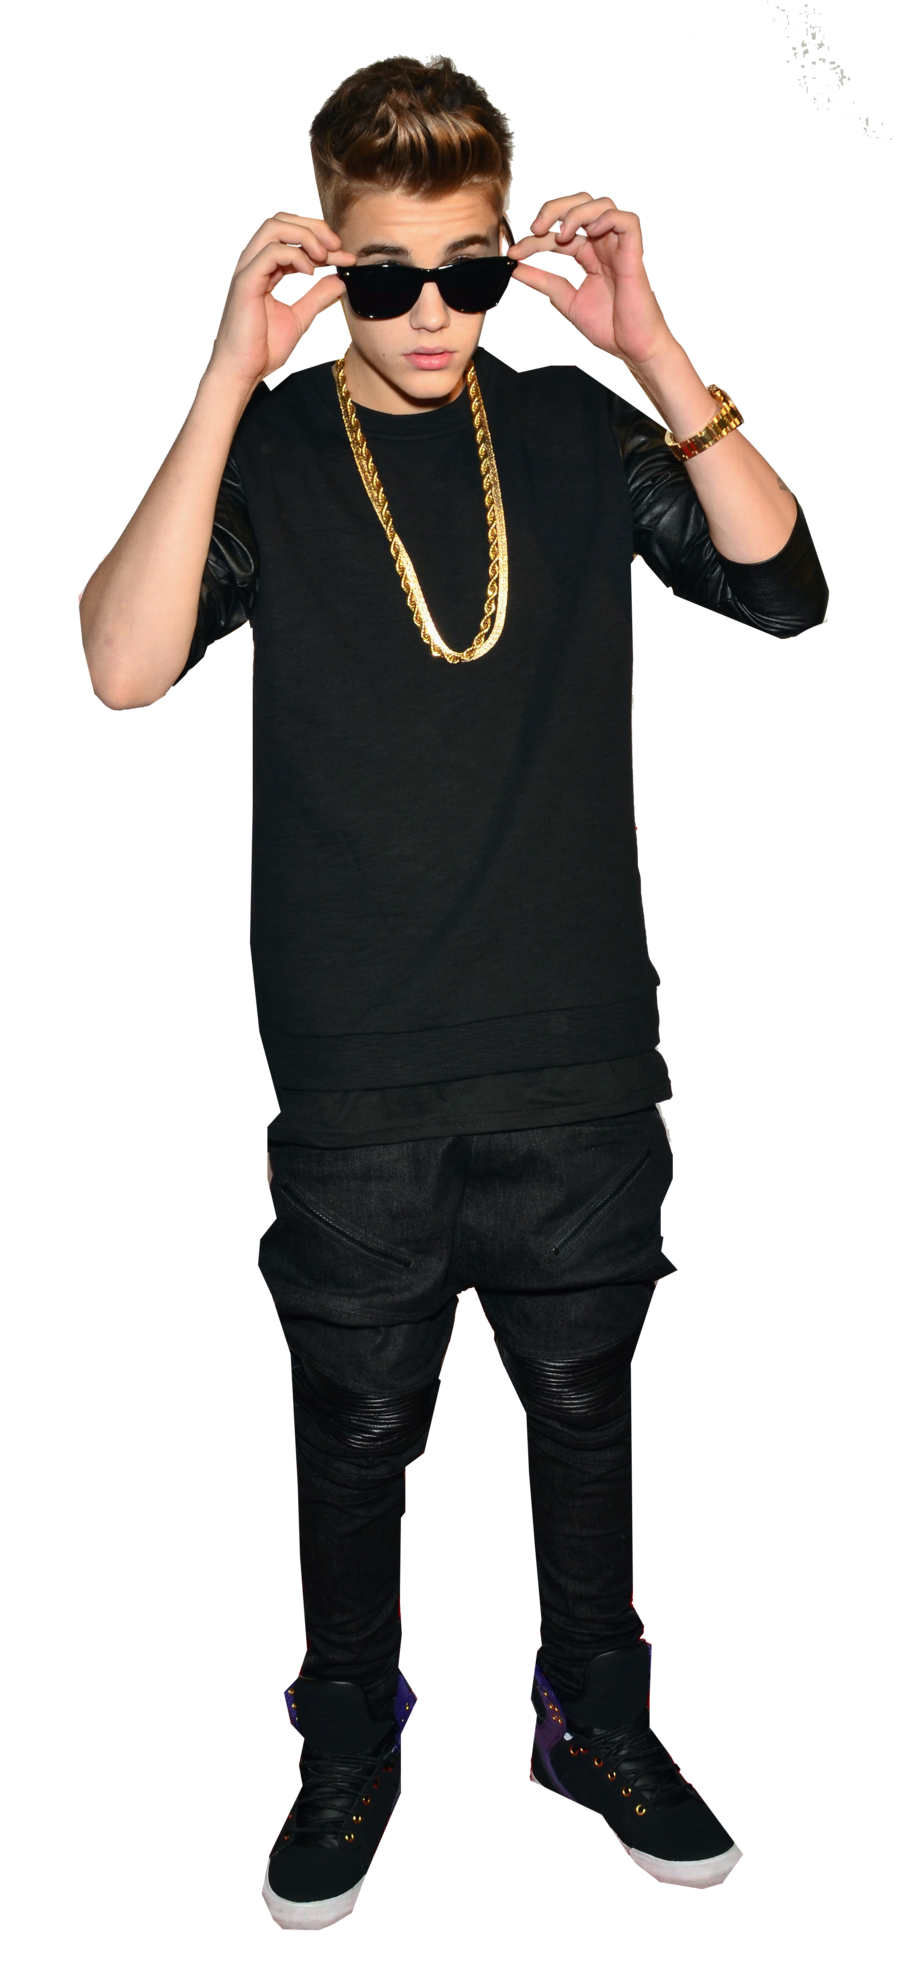 Justin Bieber PNG Clipart.